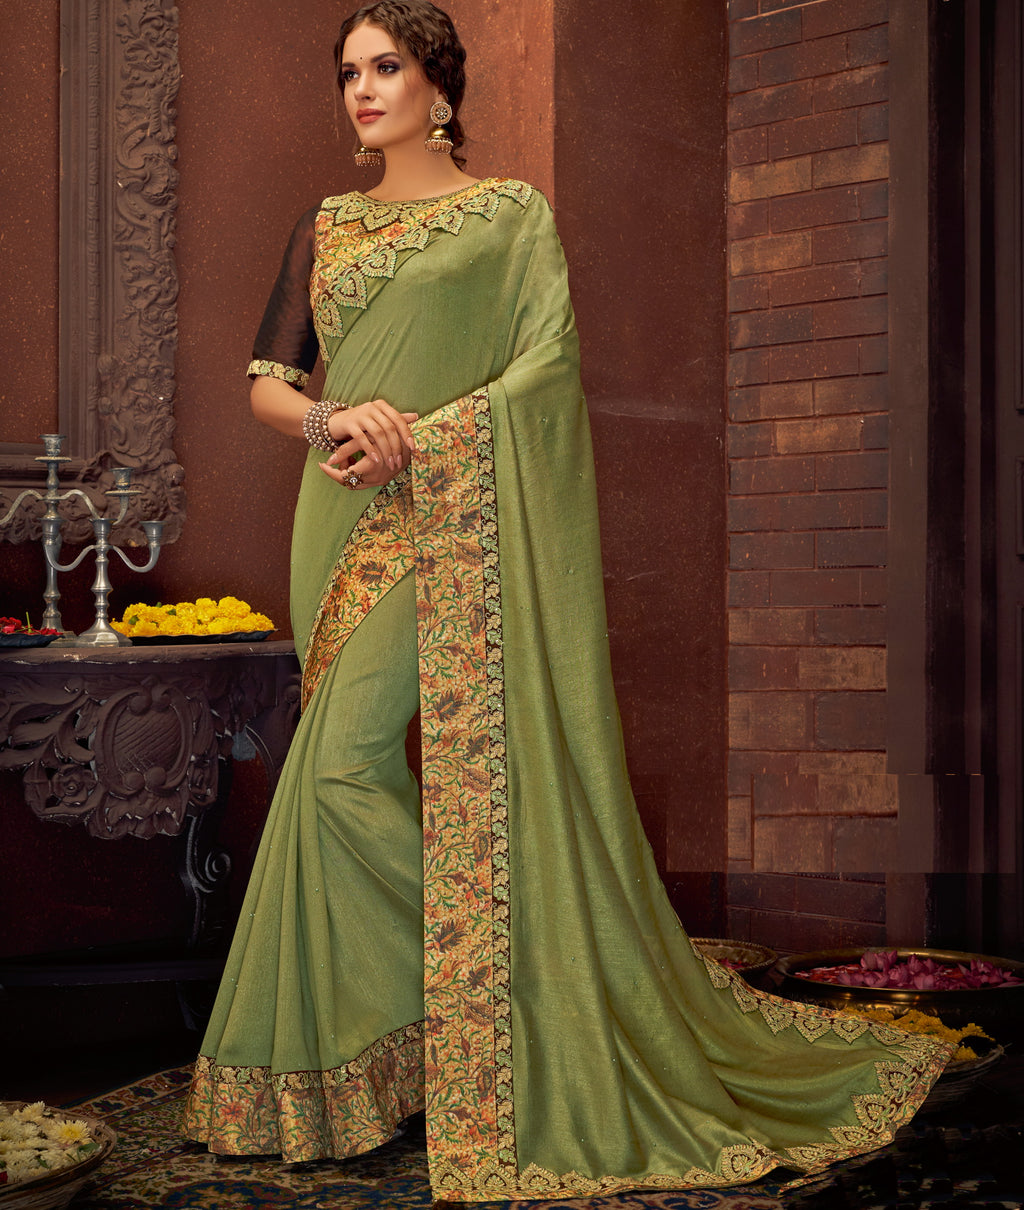 Green Color Silk Georgette Splendid Festive Sarees NYF-5209